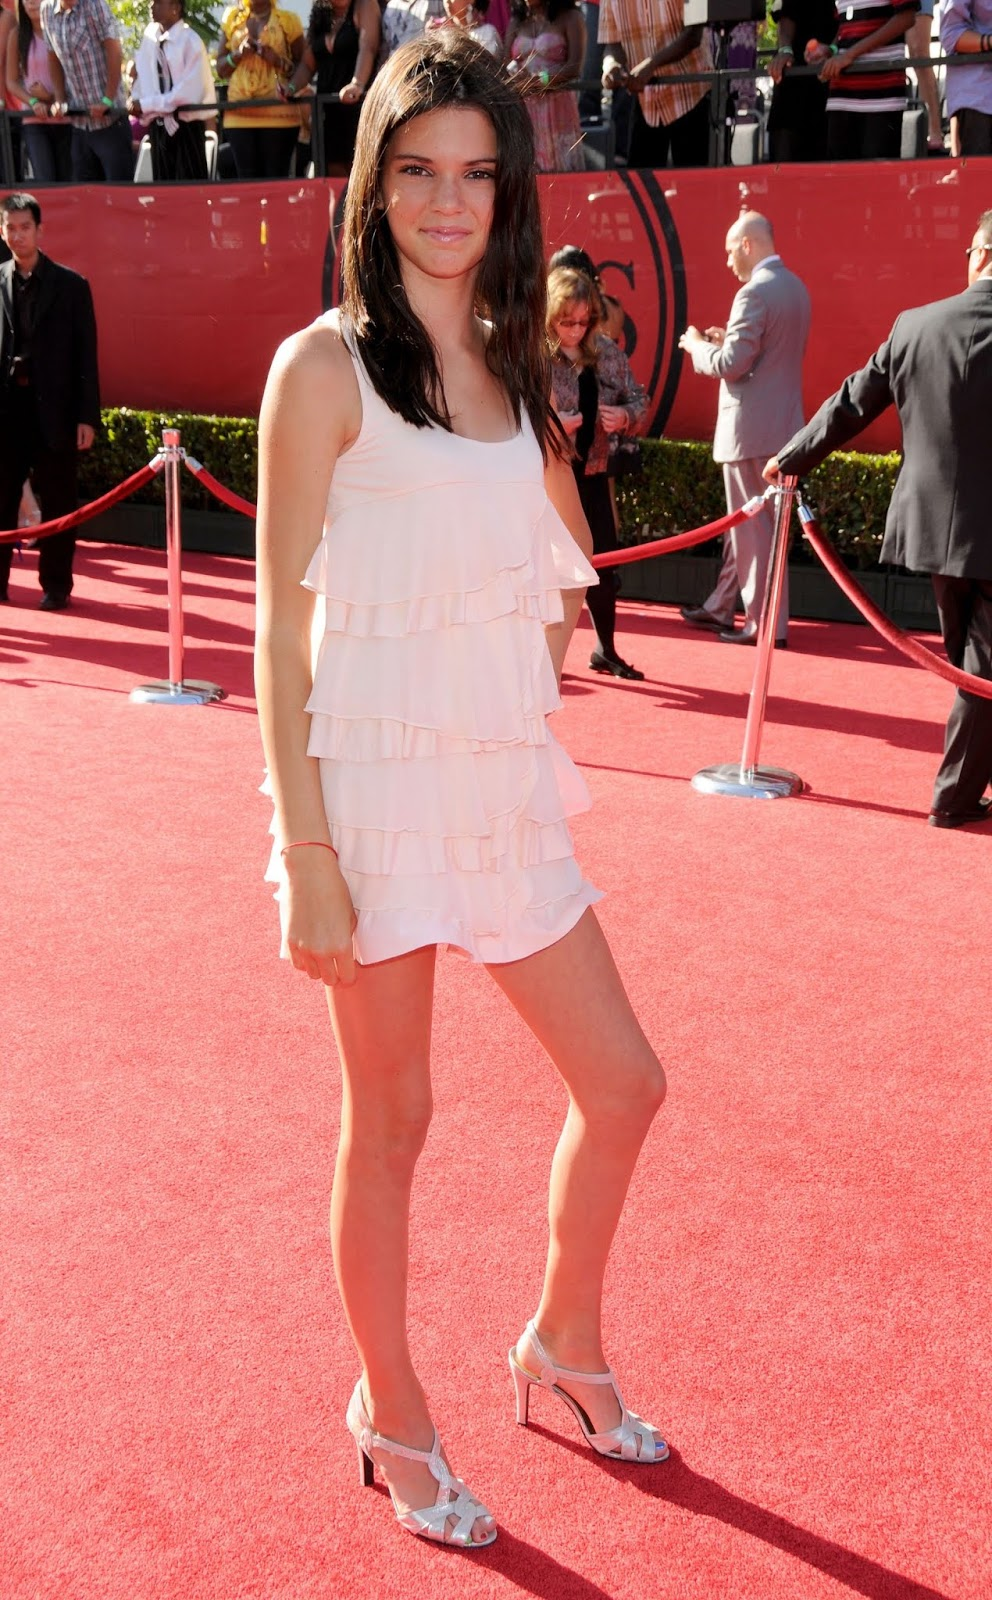 15-07-2009 17th Annual ESPY Awards-23